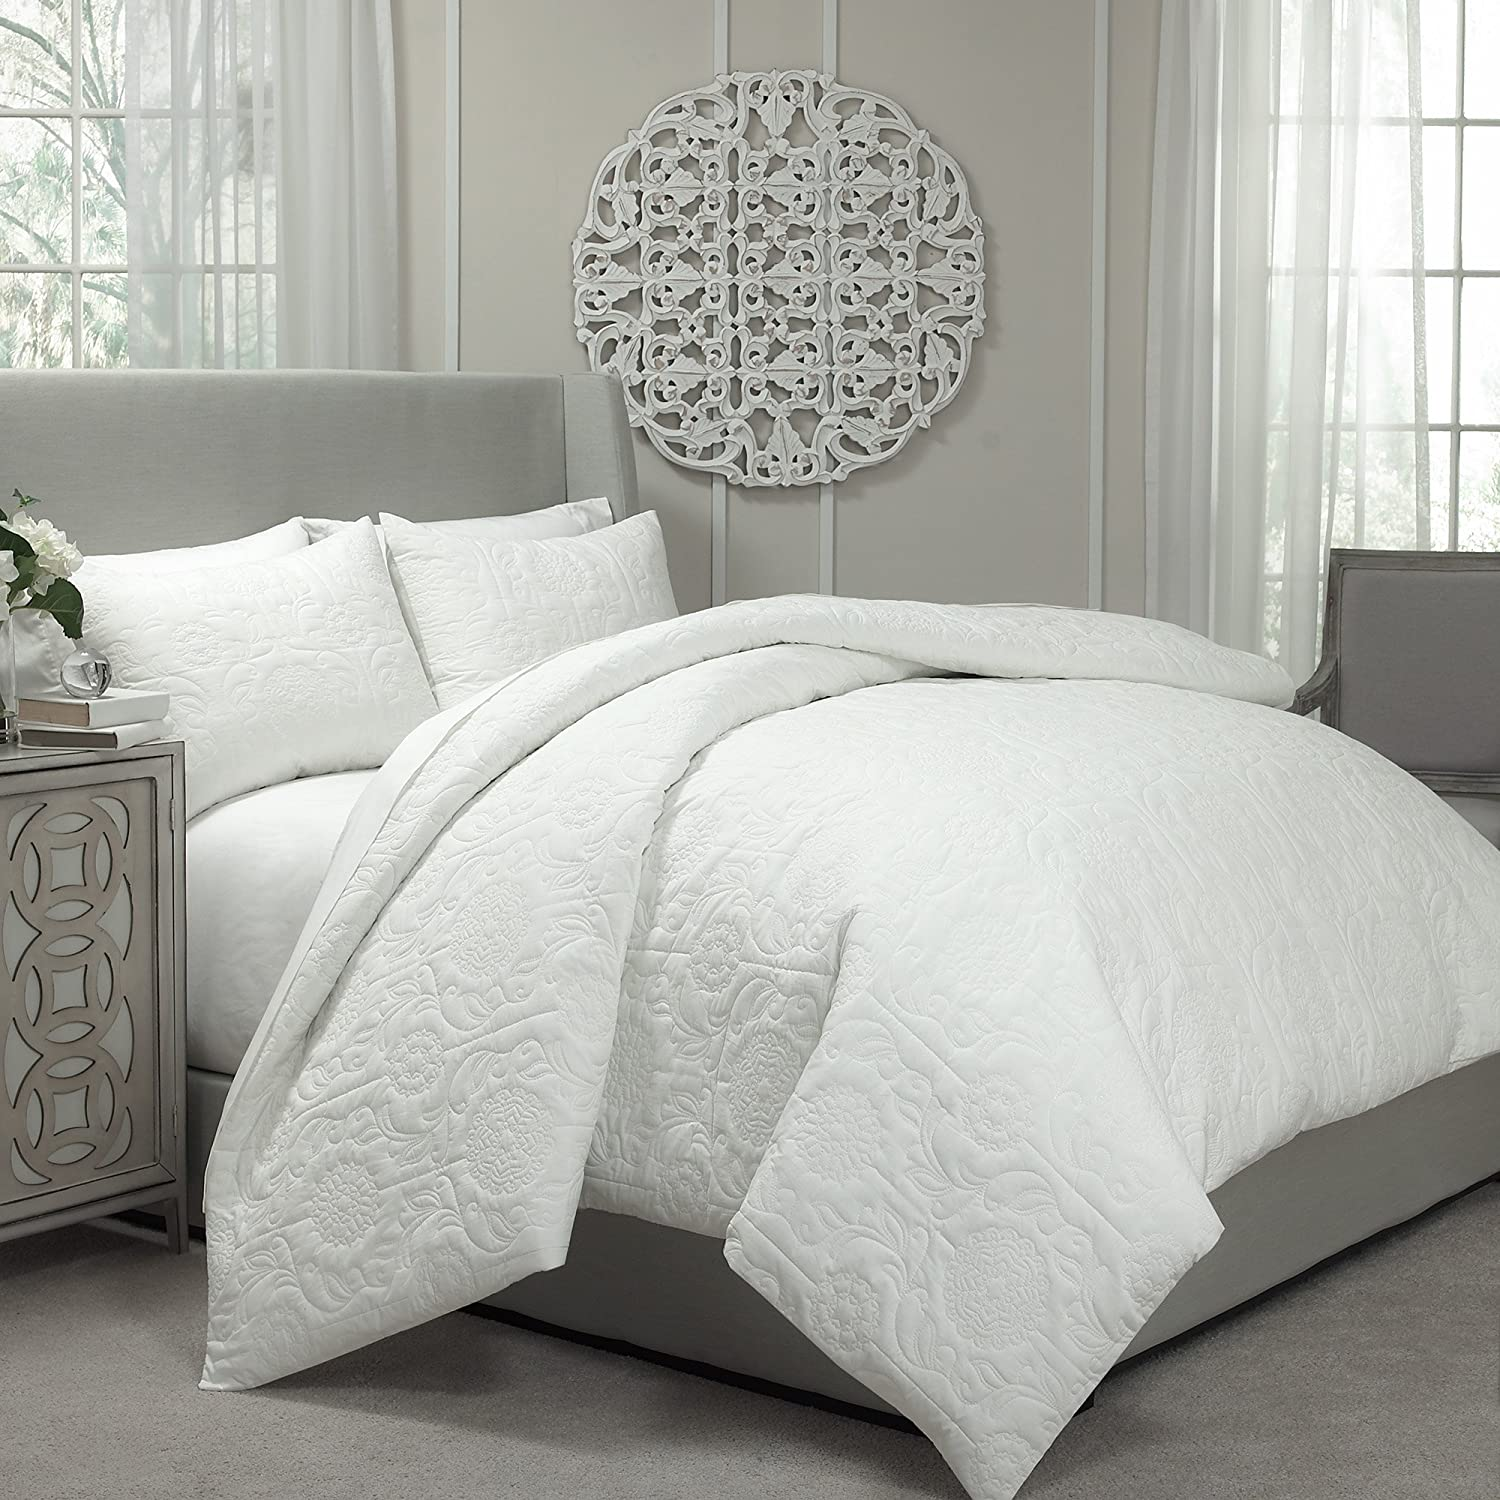 Vue Barcelona Quilted Coverlet and Duvet Ensemble, King, Ivory Ellery Homestyles 13811BEDDKNGIVY